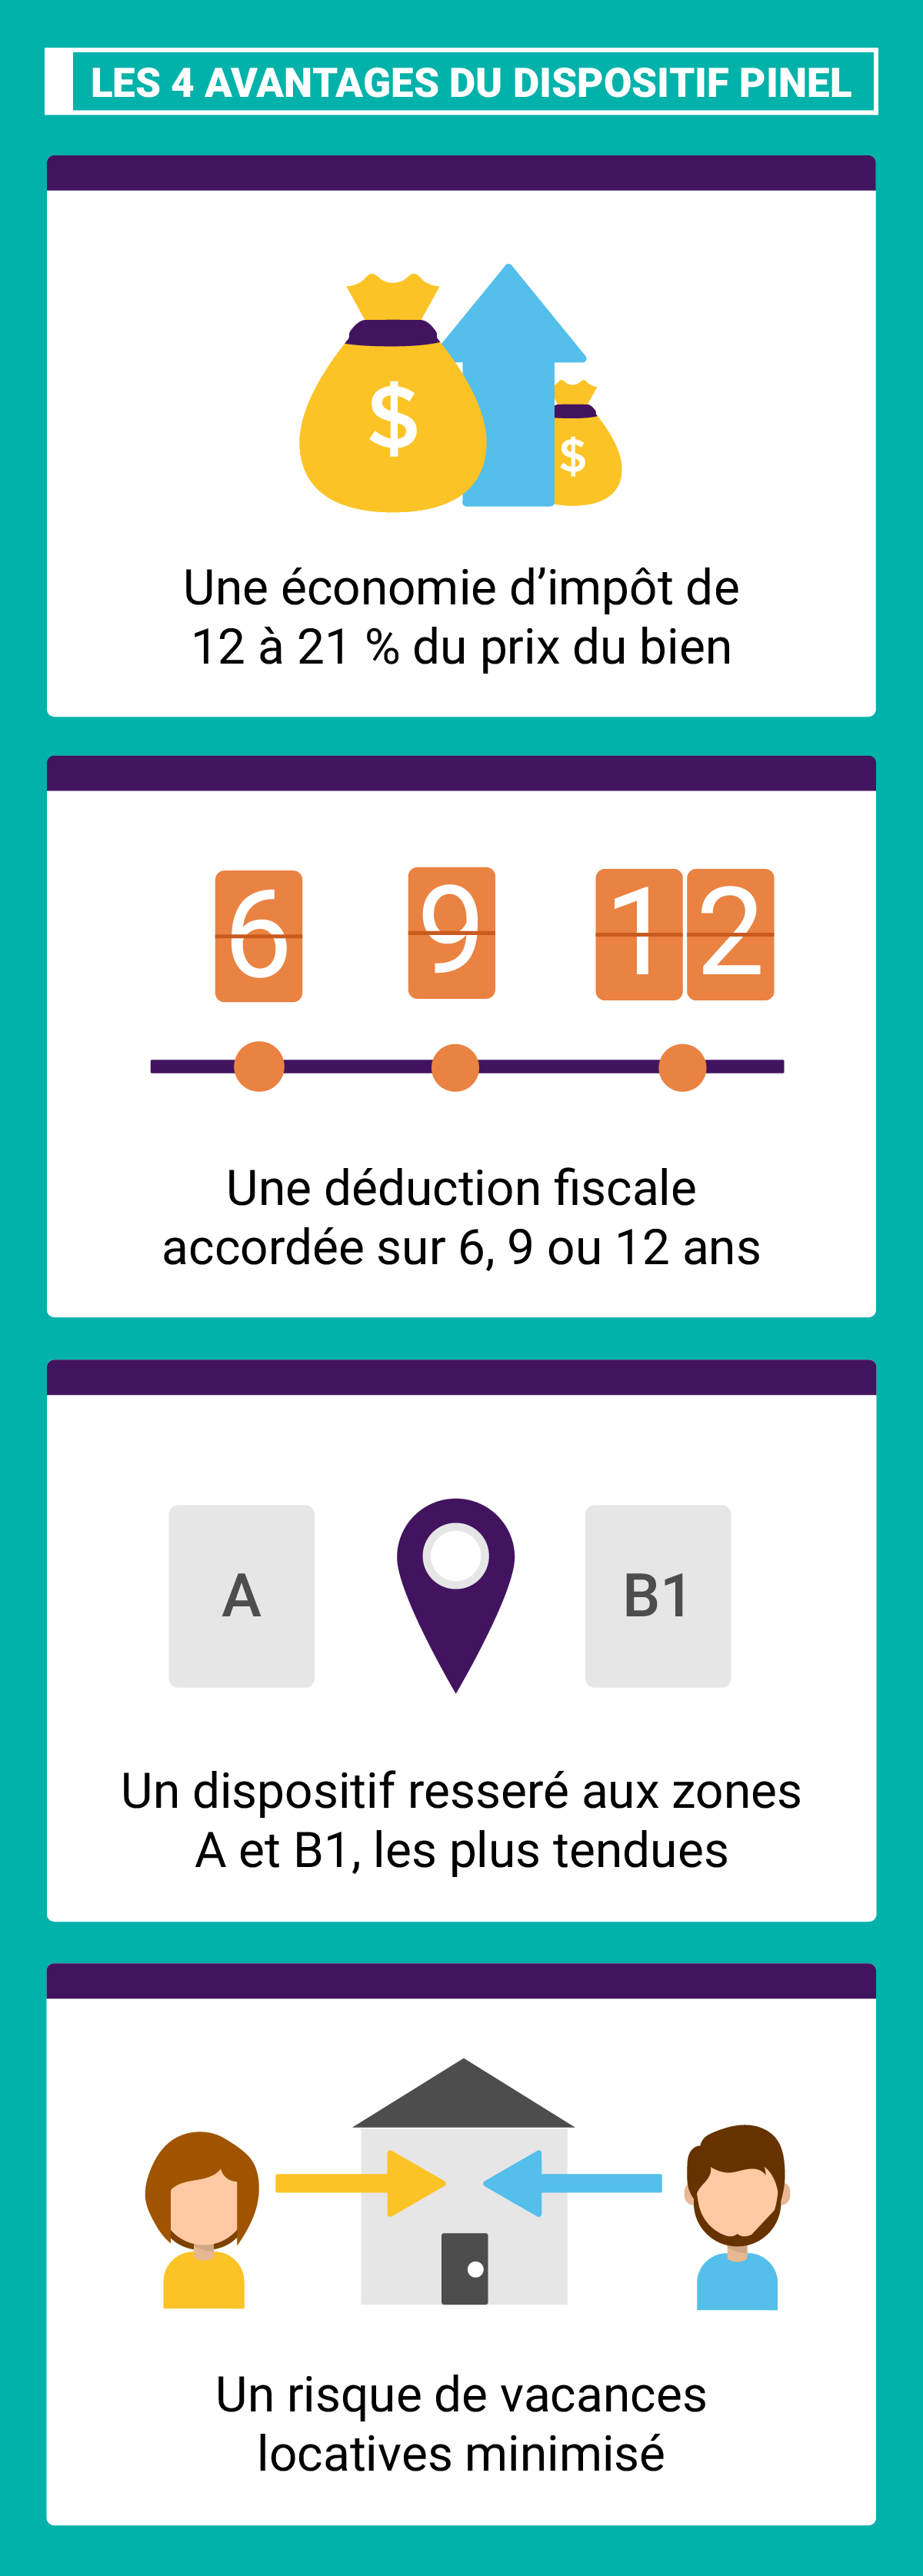 Les 4 avantages du dispositif Pinel